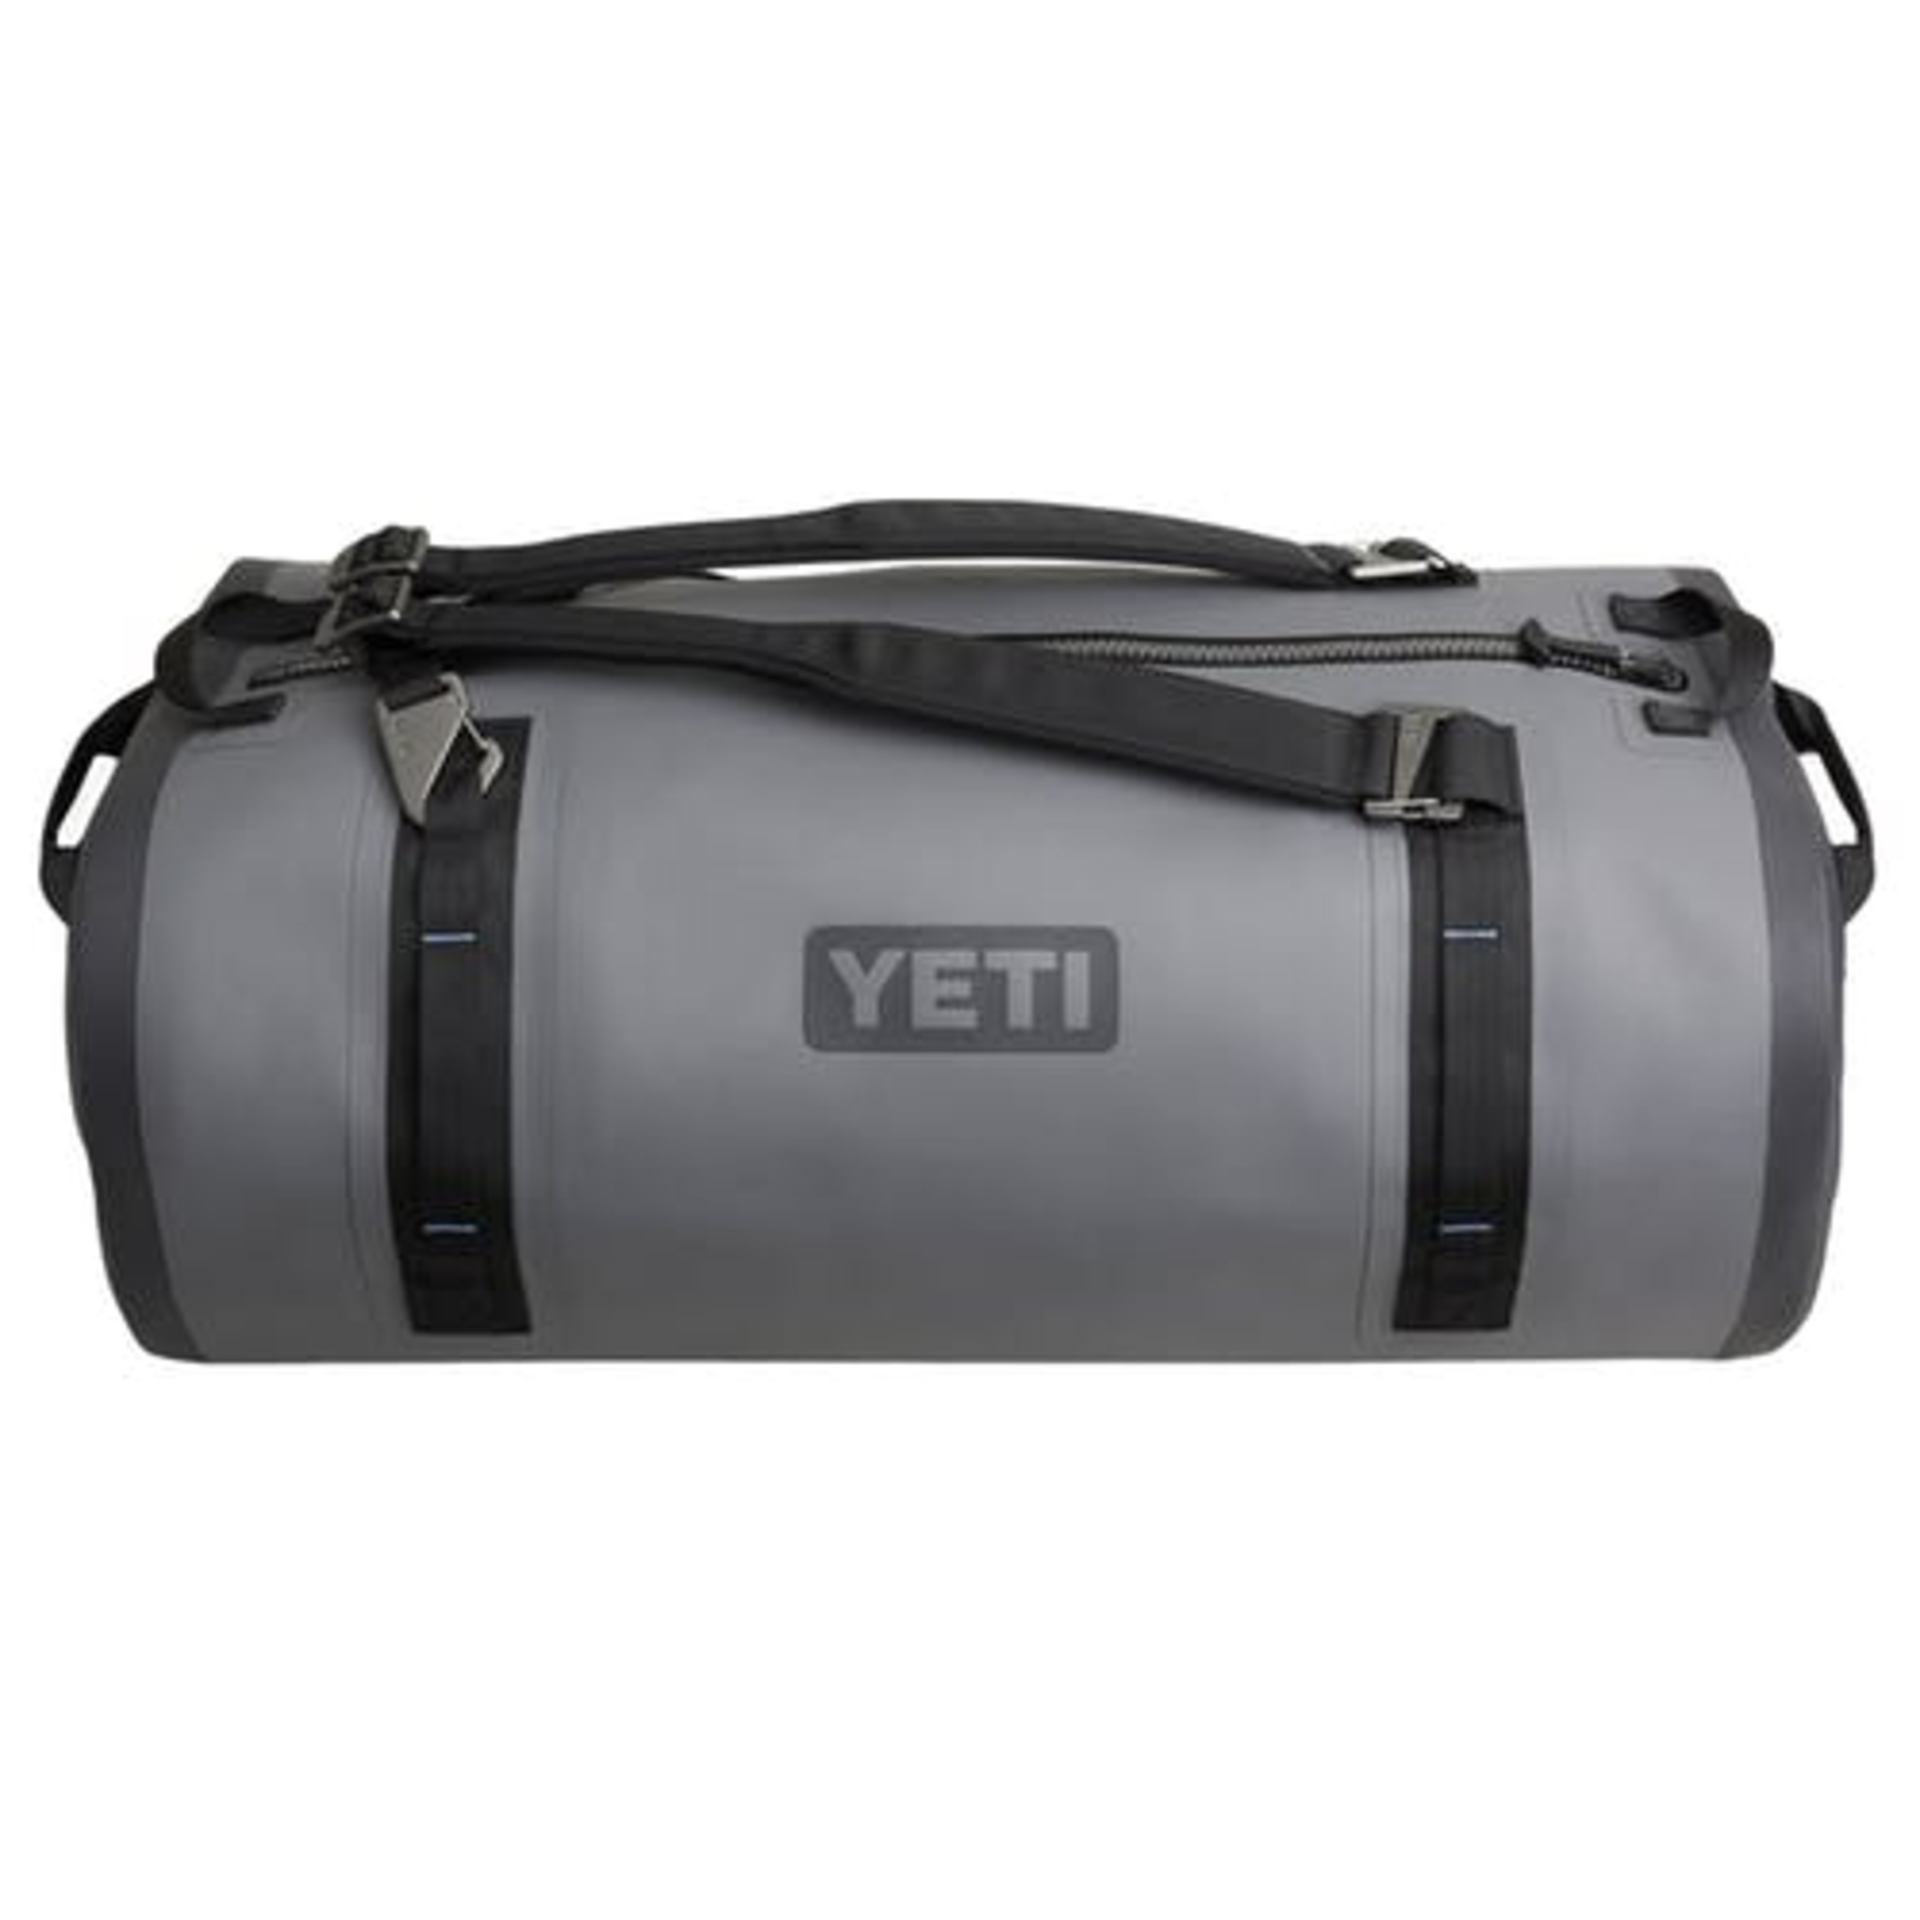 Reviews On Coolers - rlnILUw8CP_yeti-coolers_panga_submerisible_duffel-75_l_camp-gear_0_original